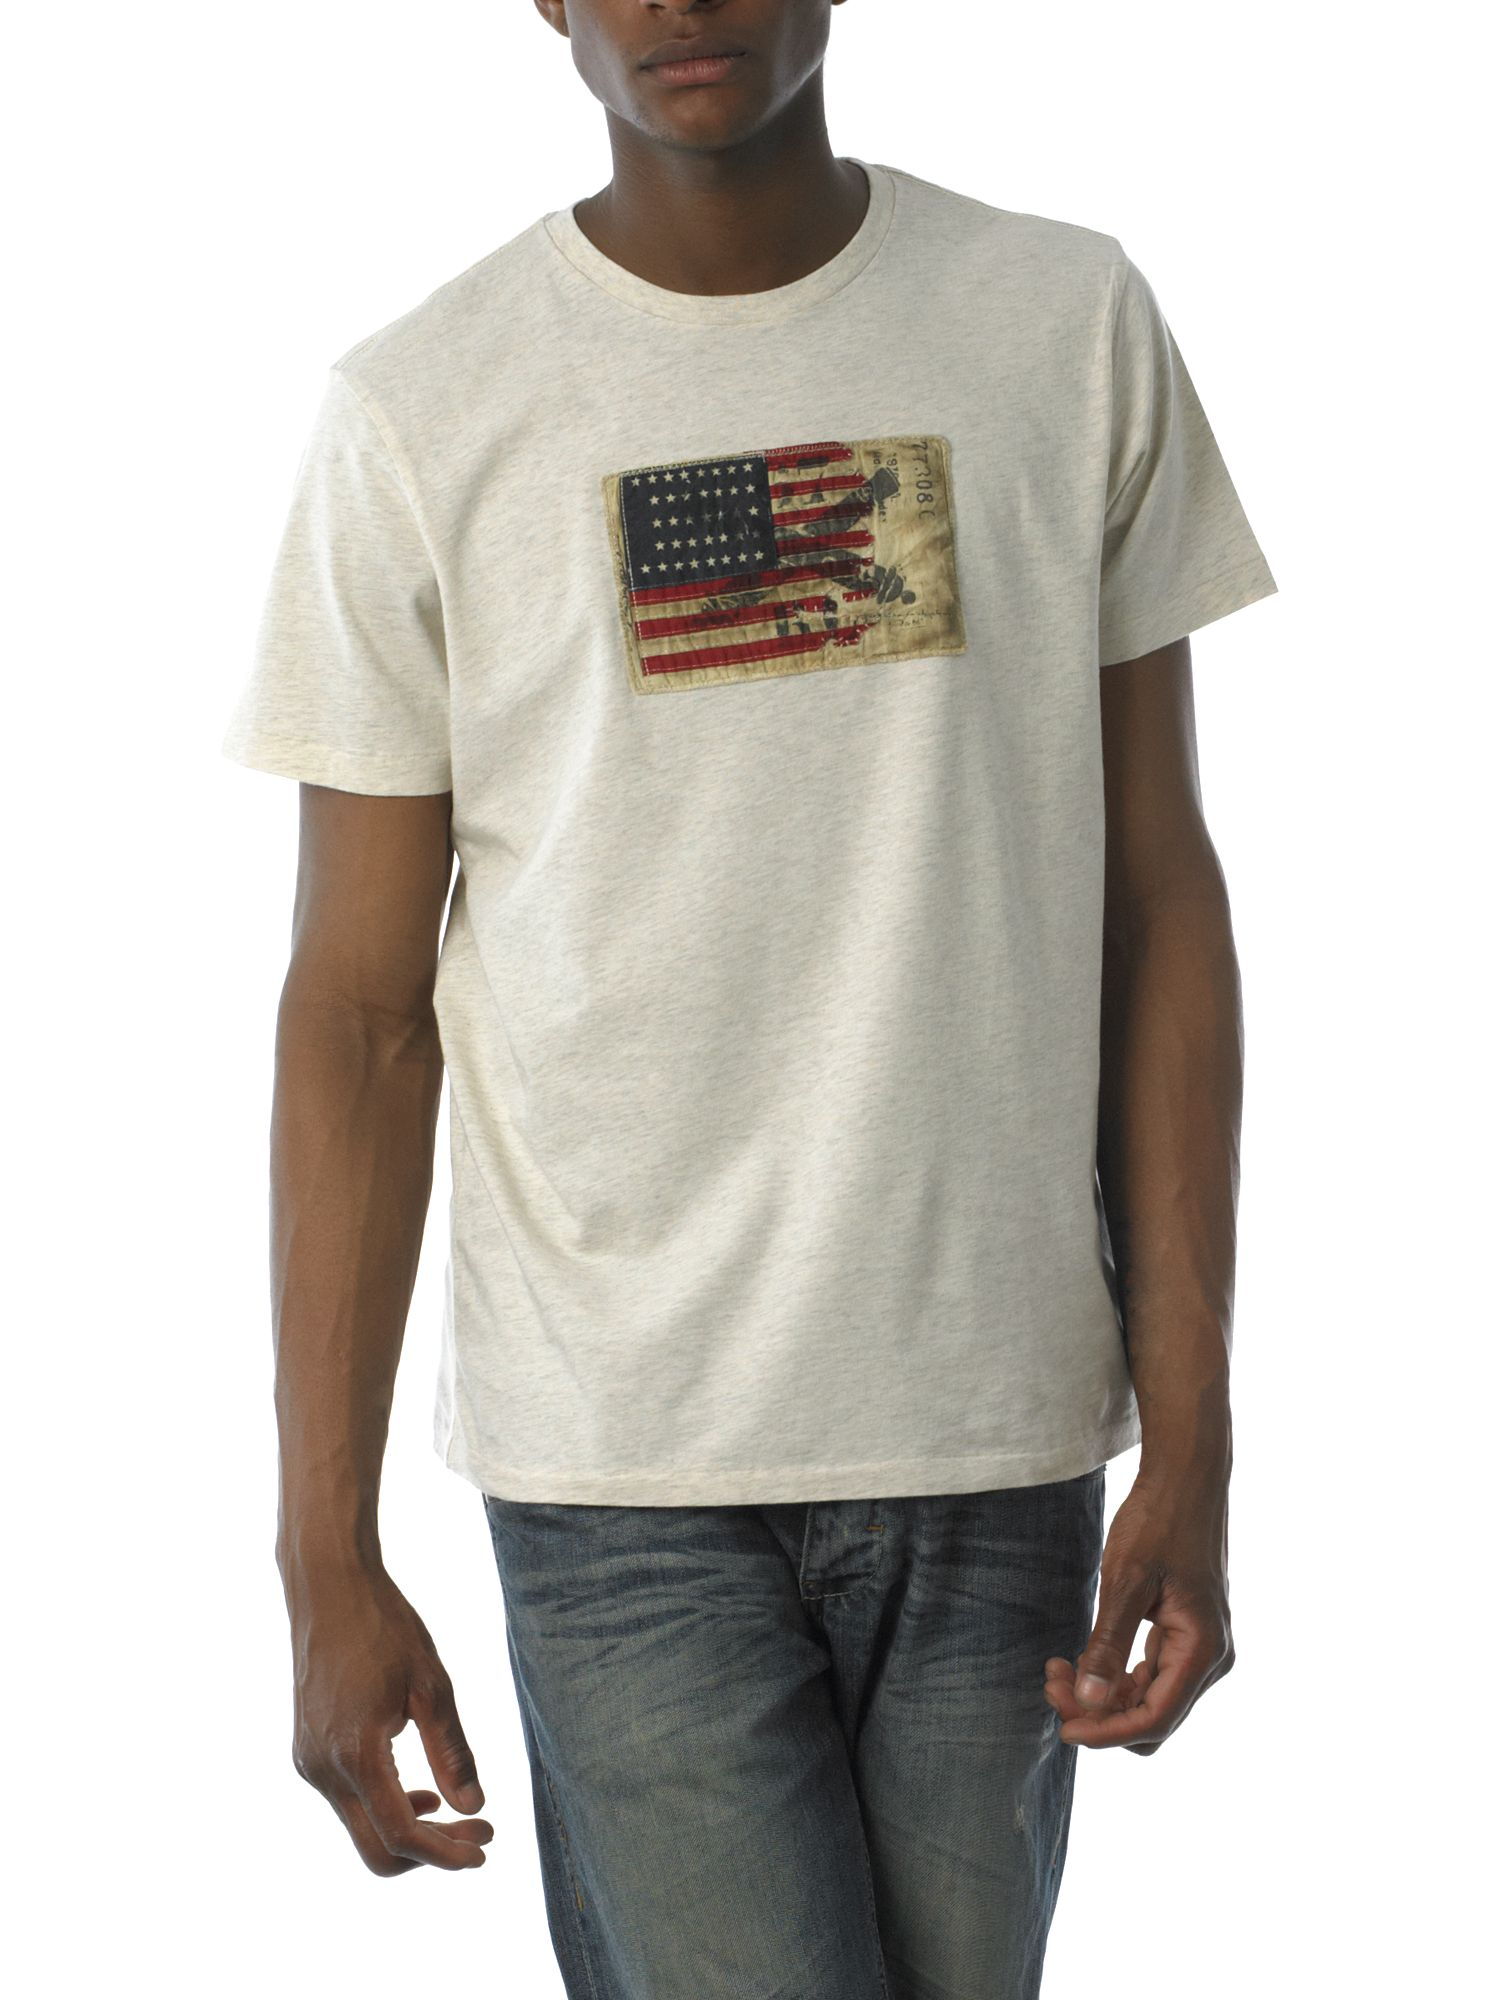 Polo Jeans Flag applique T-shirt Cream product image